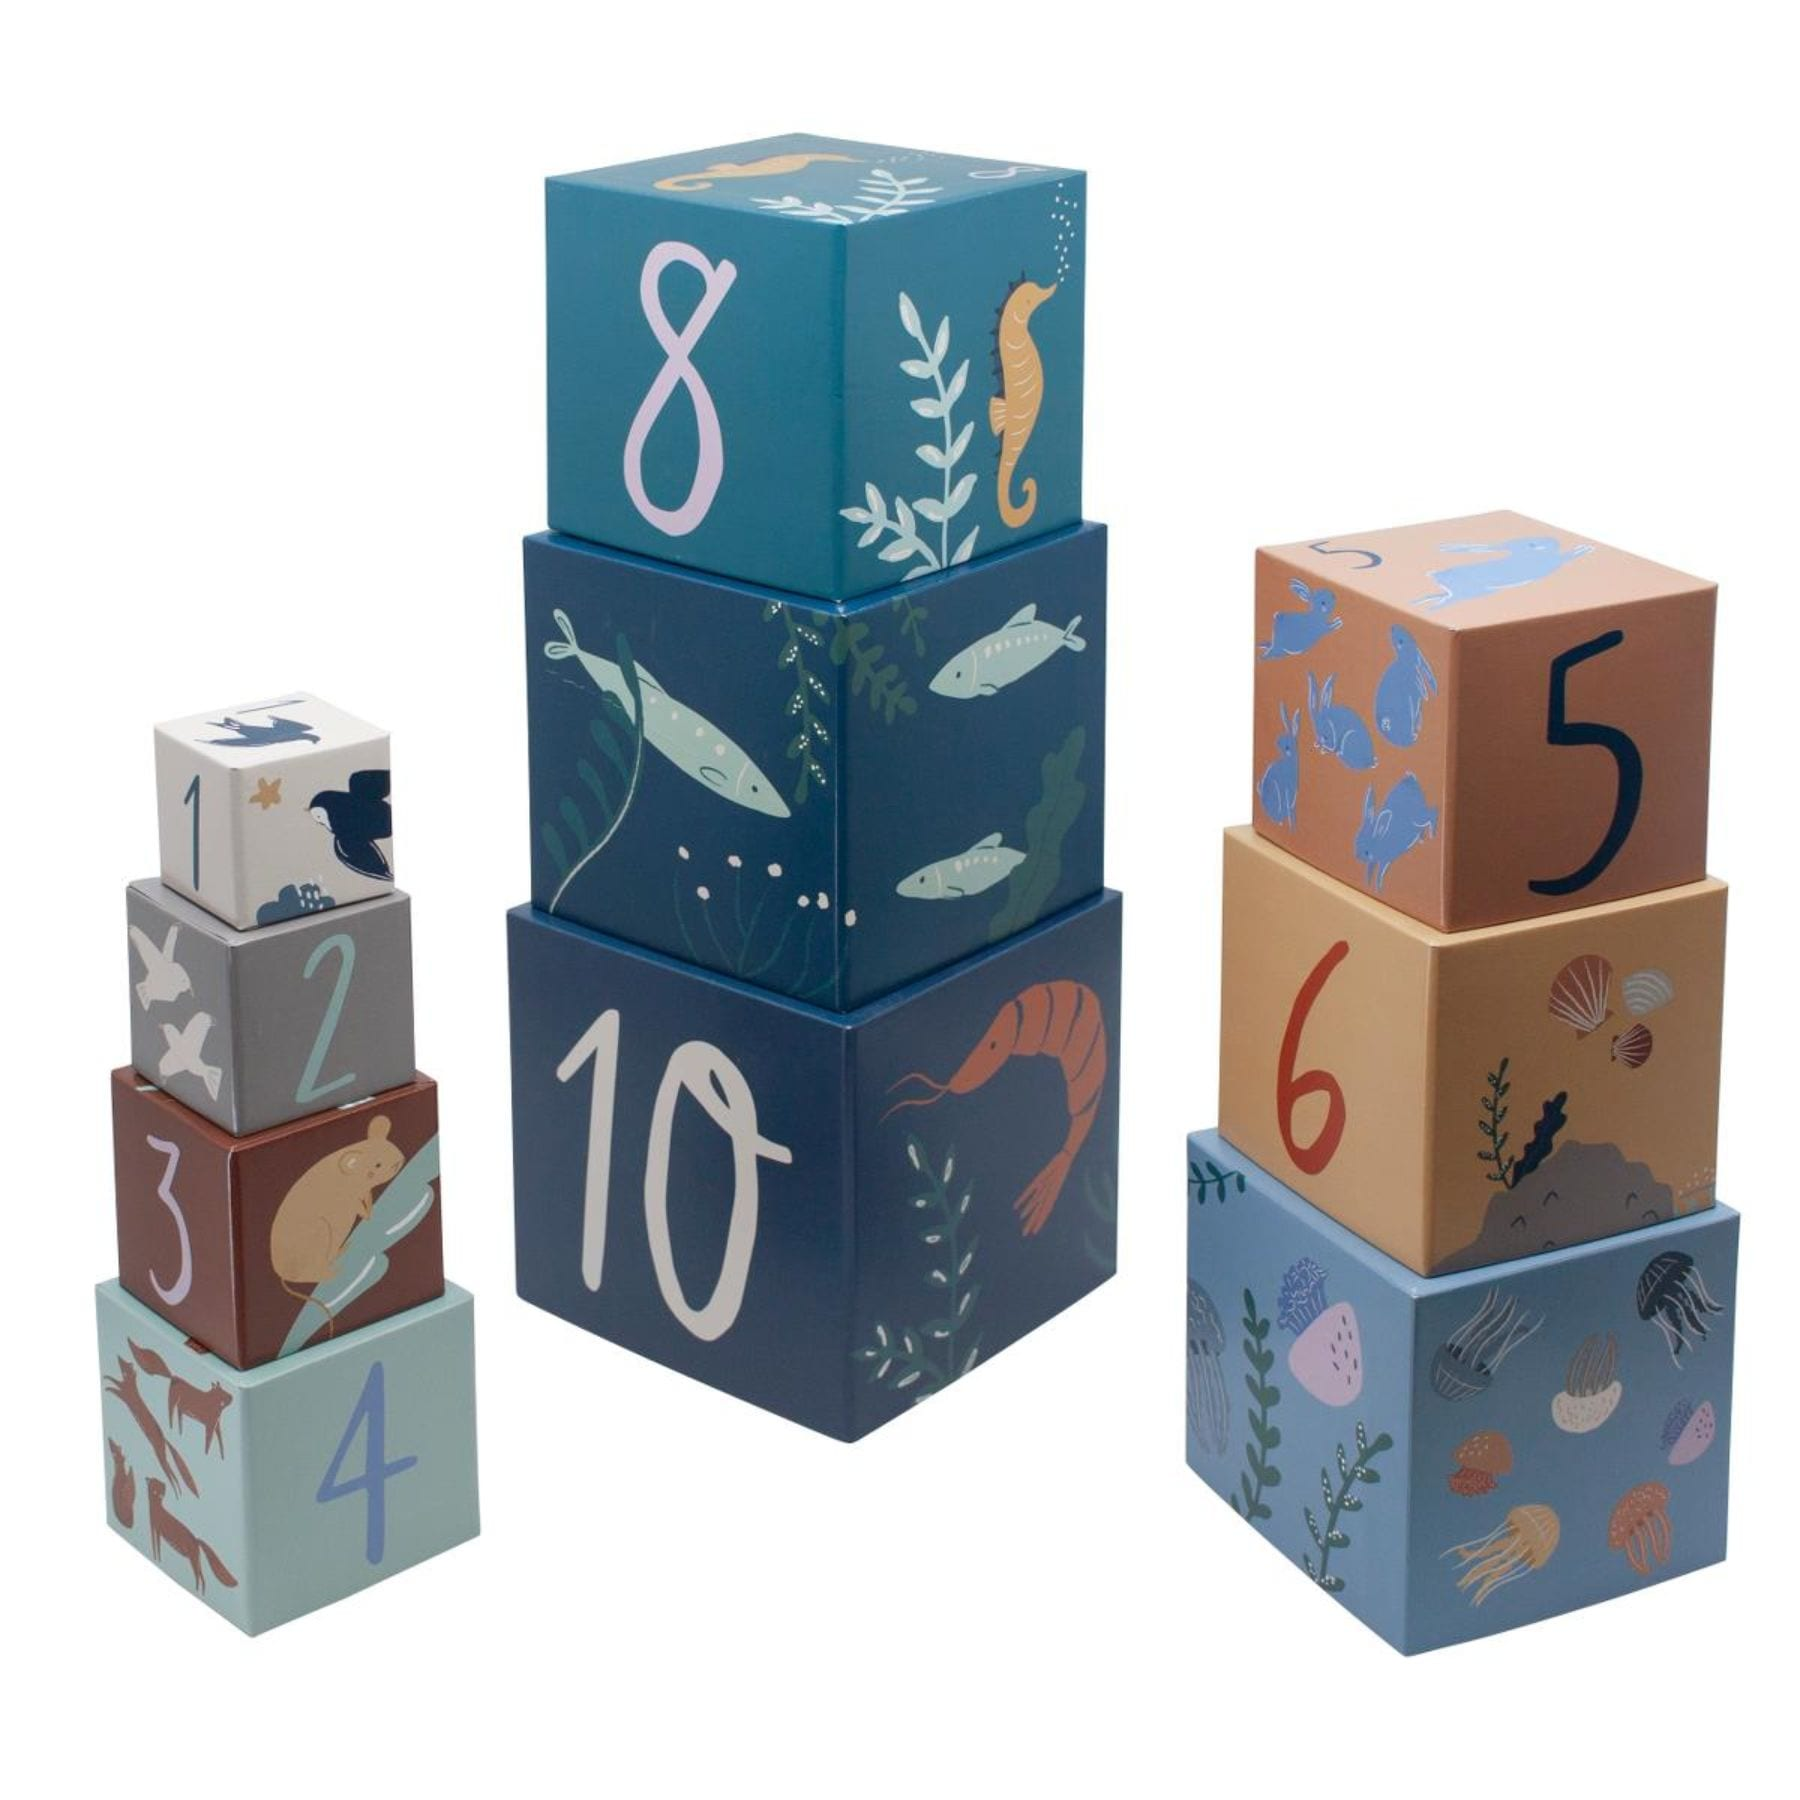 Sebra Stacking Blocks - Seven Seas/Daydream